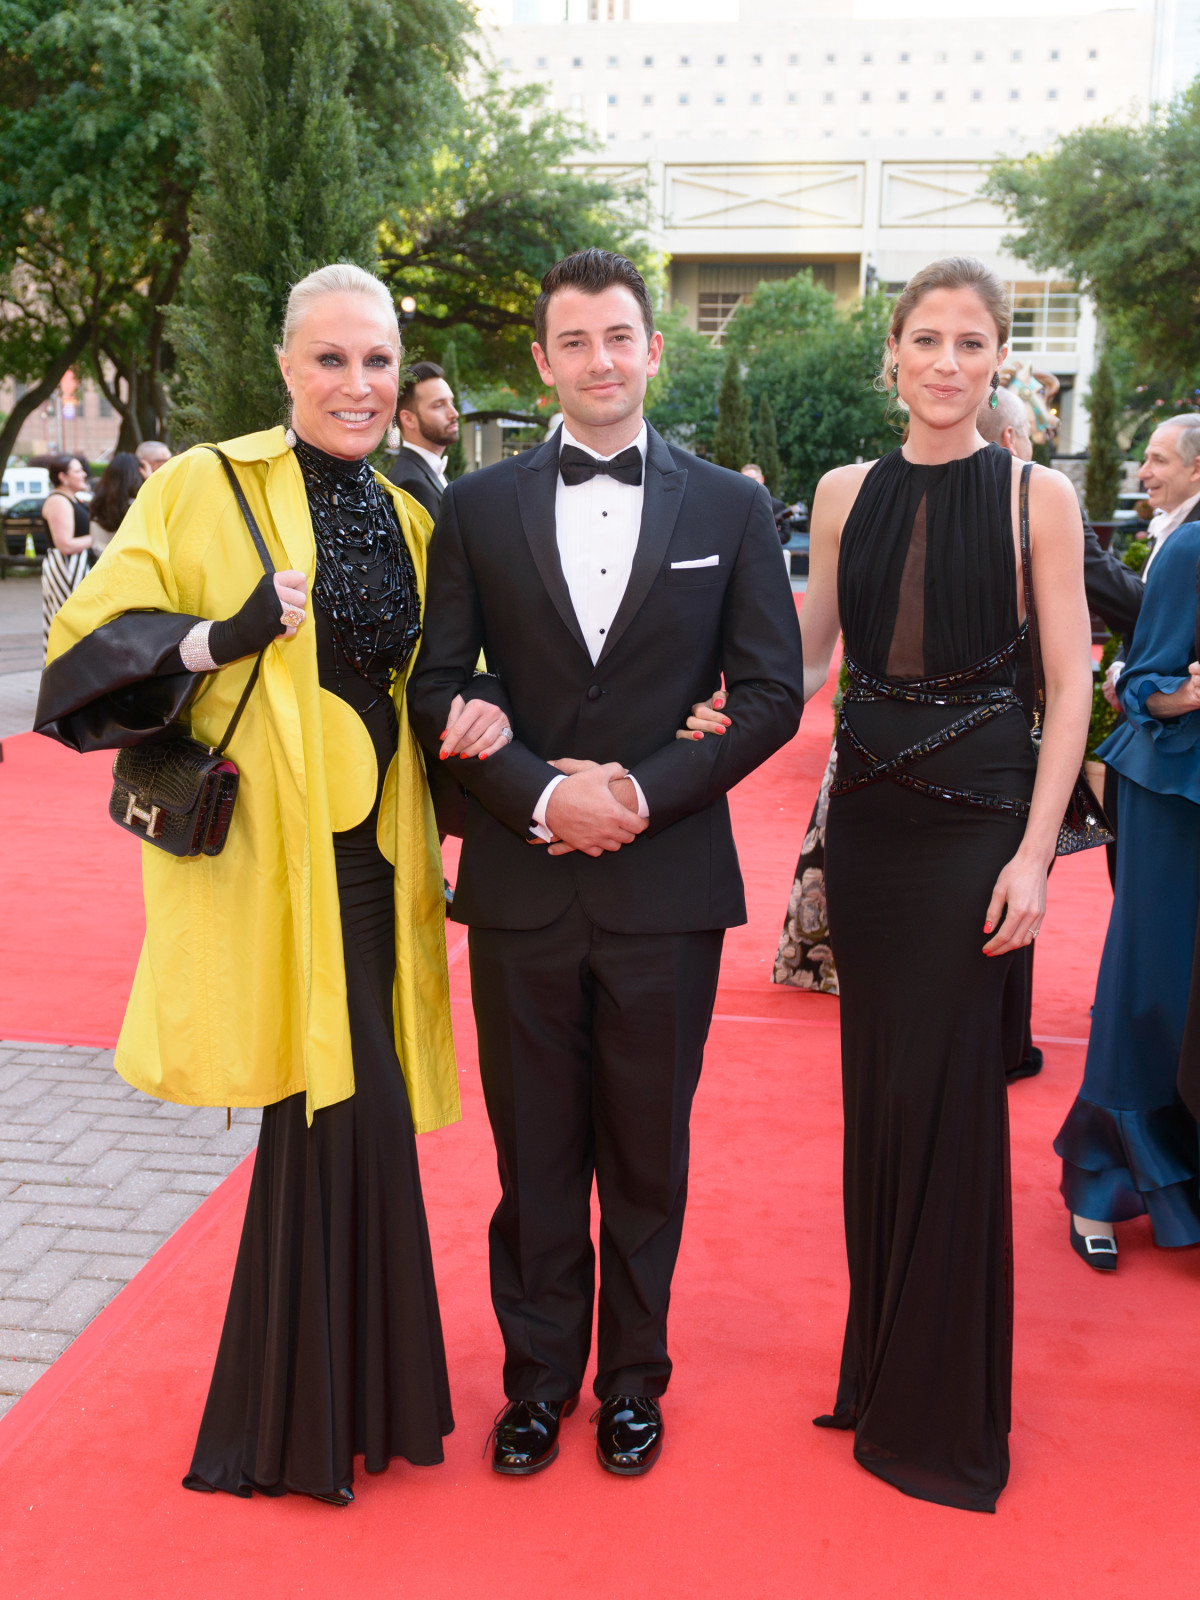 Houston Grand Opera Ball, April 2016, Suzanne Saperstein, Crayton Baer, Alexis Saperstein